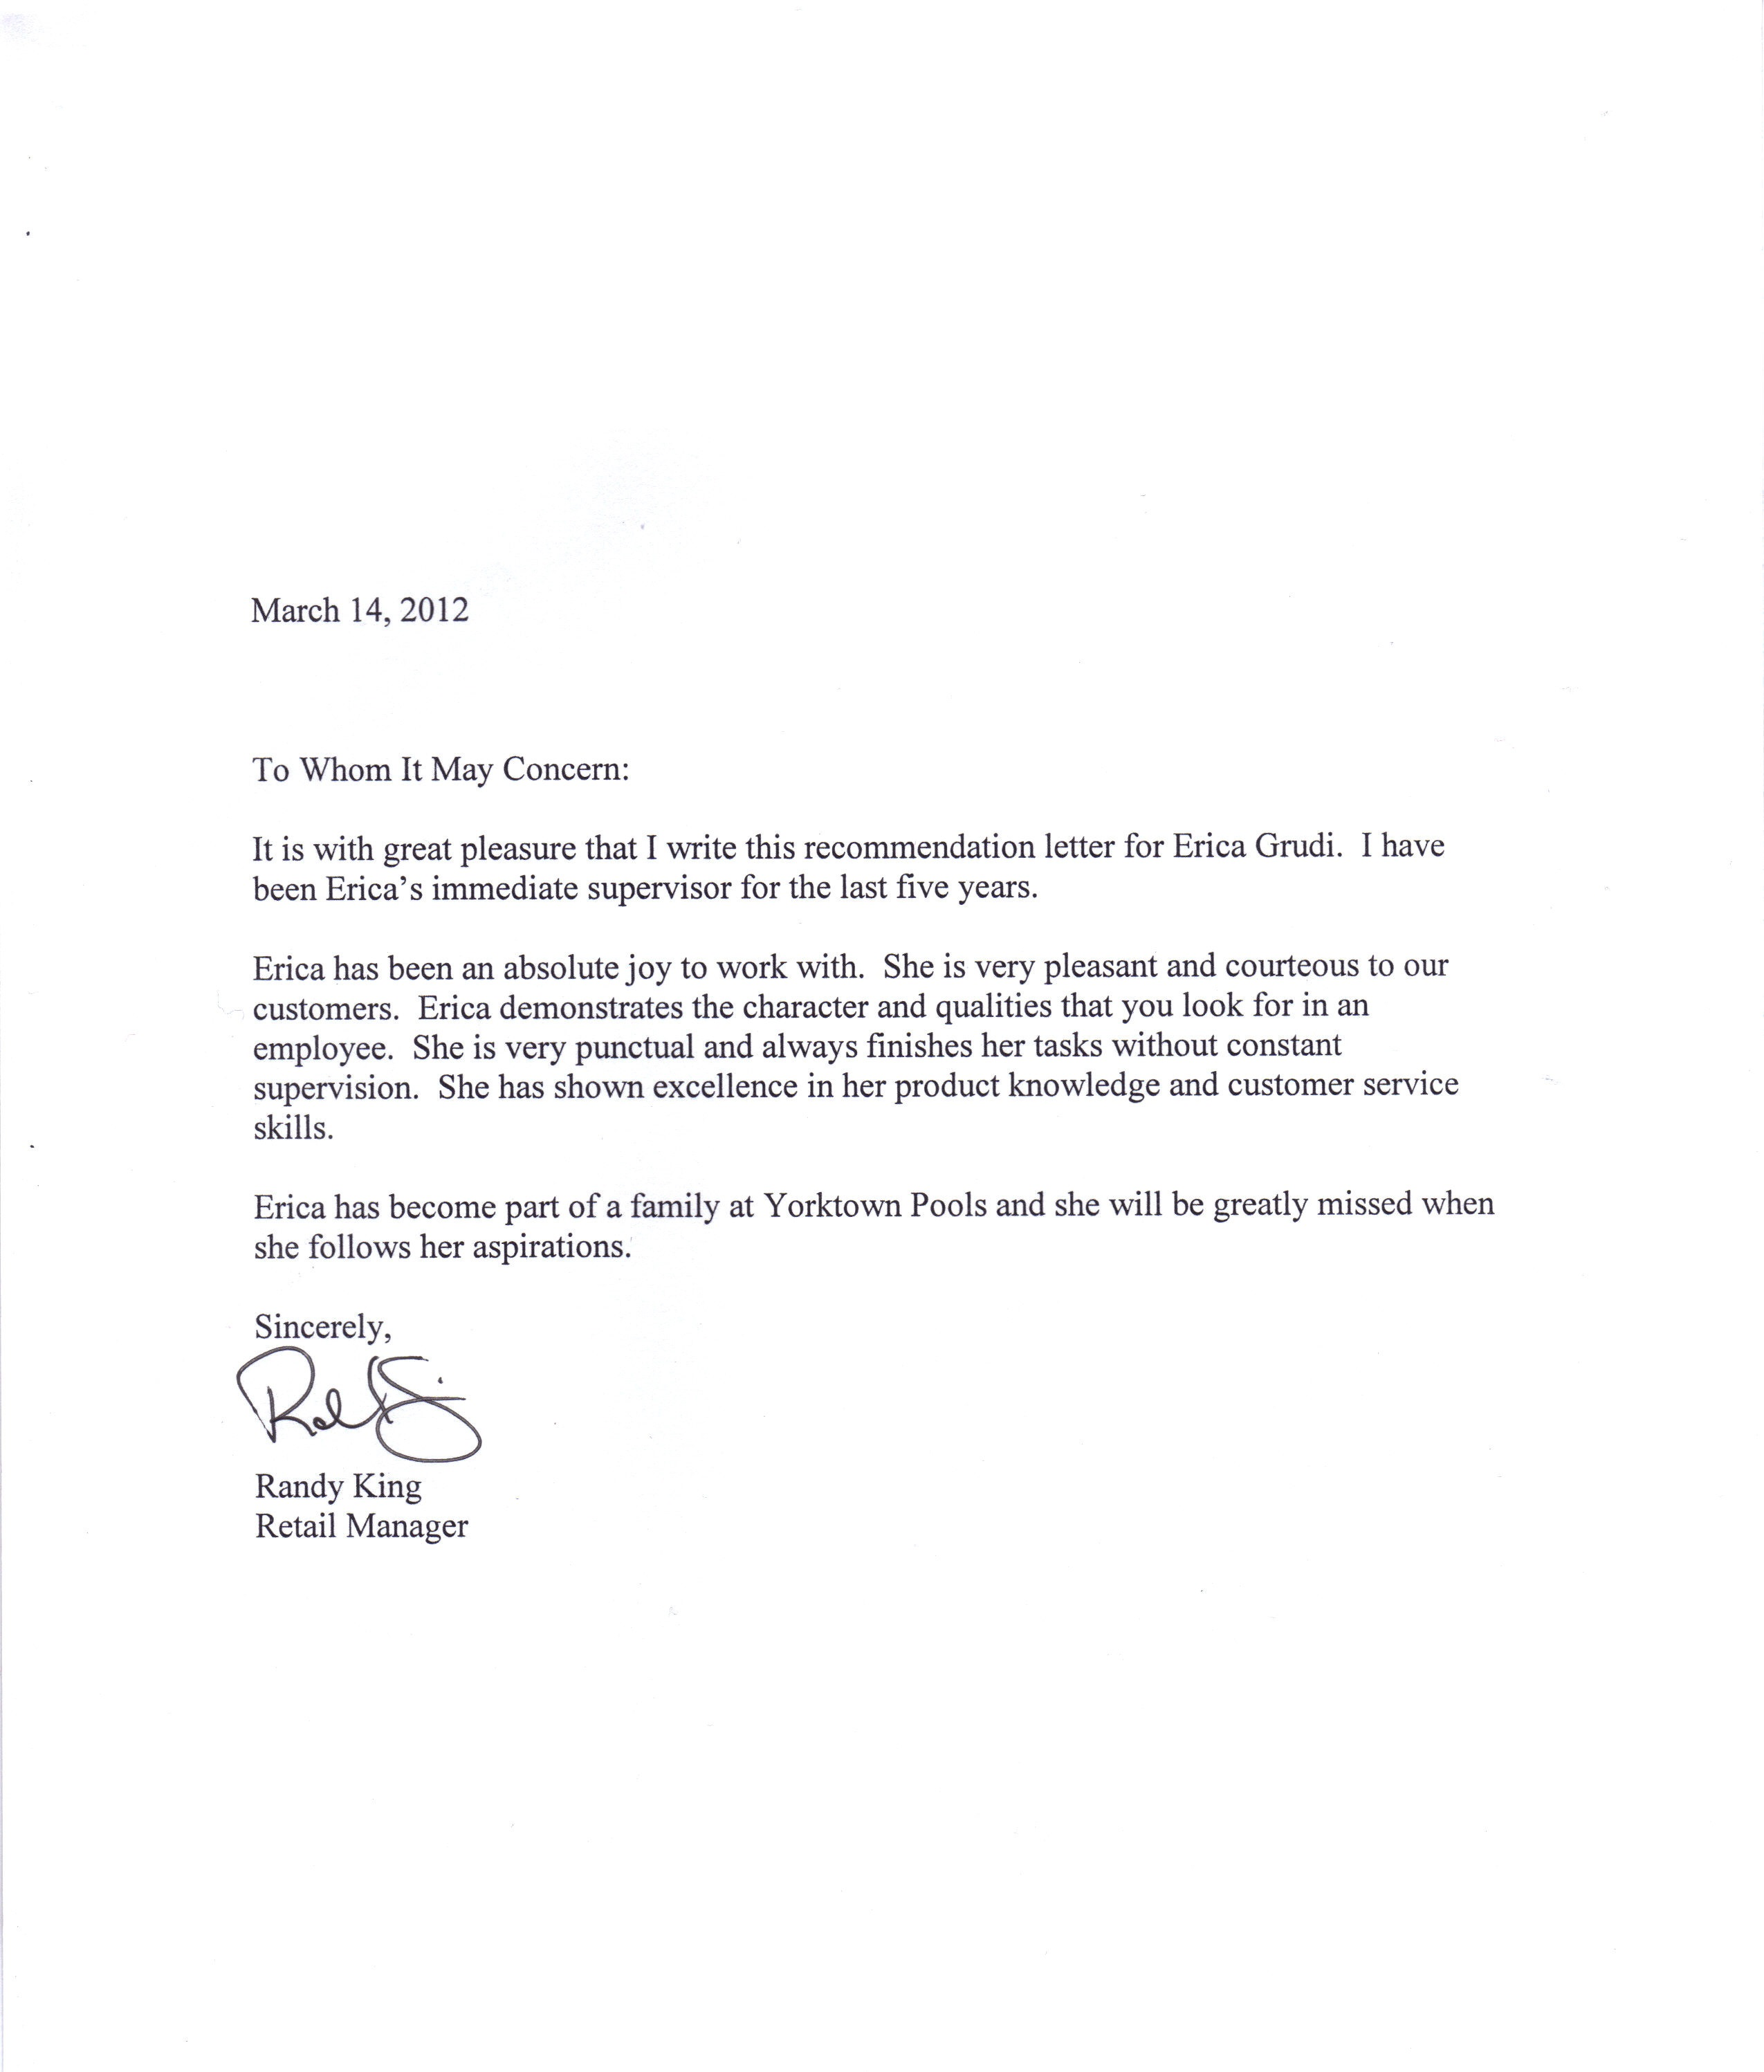 Free Recommendation Letter Download – Free Sample Letter of Recommendation